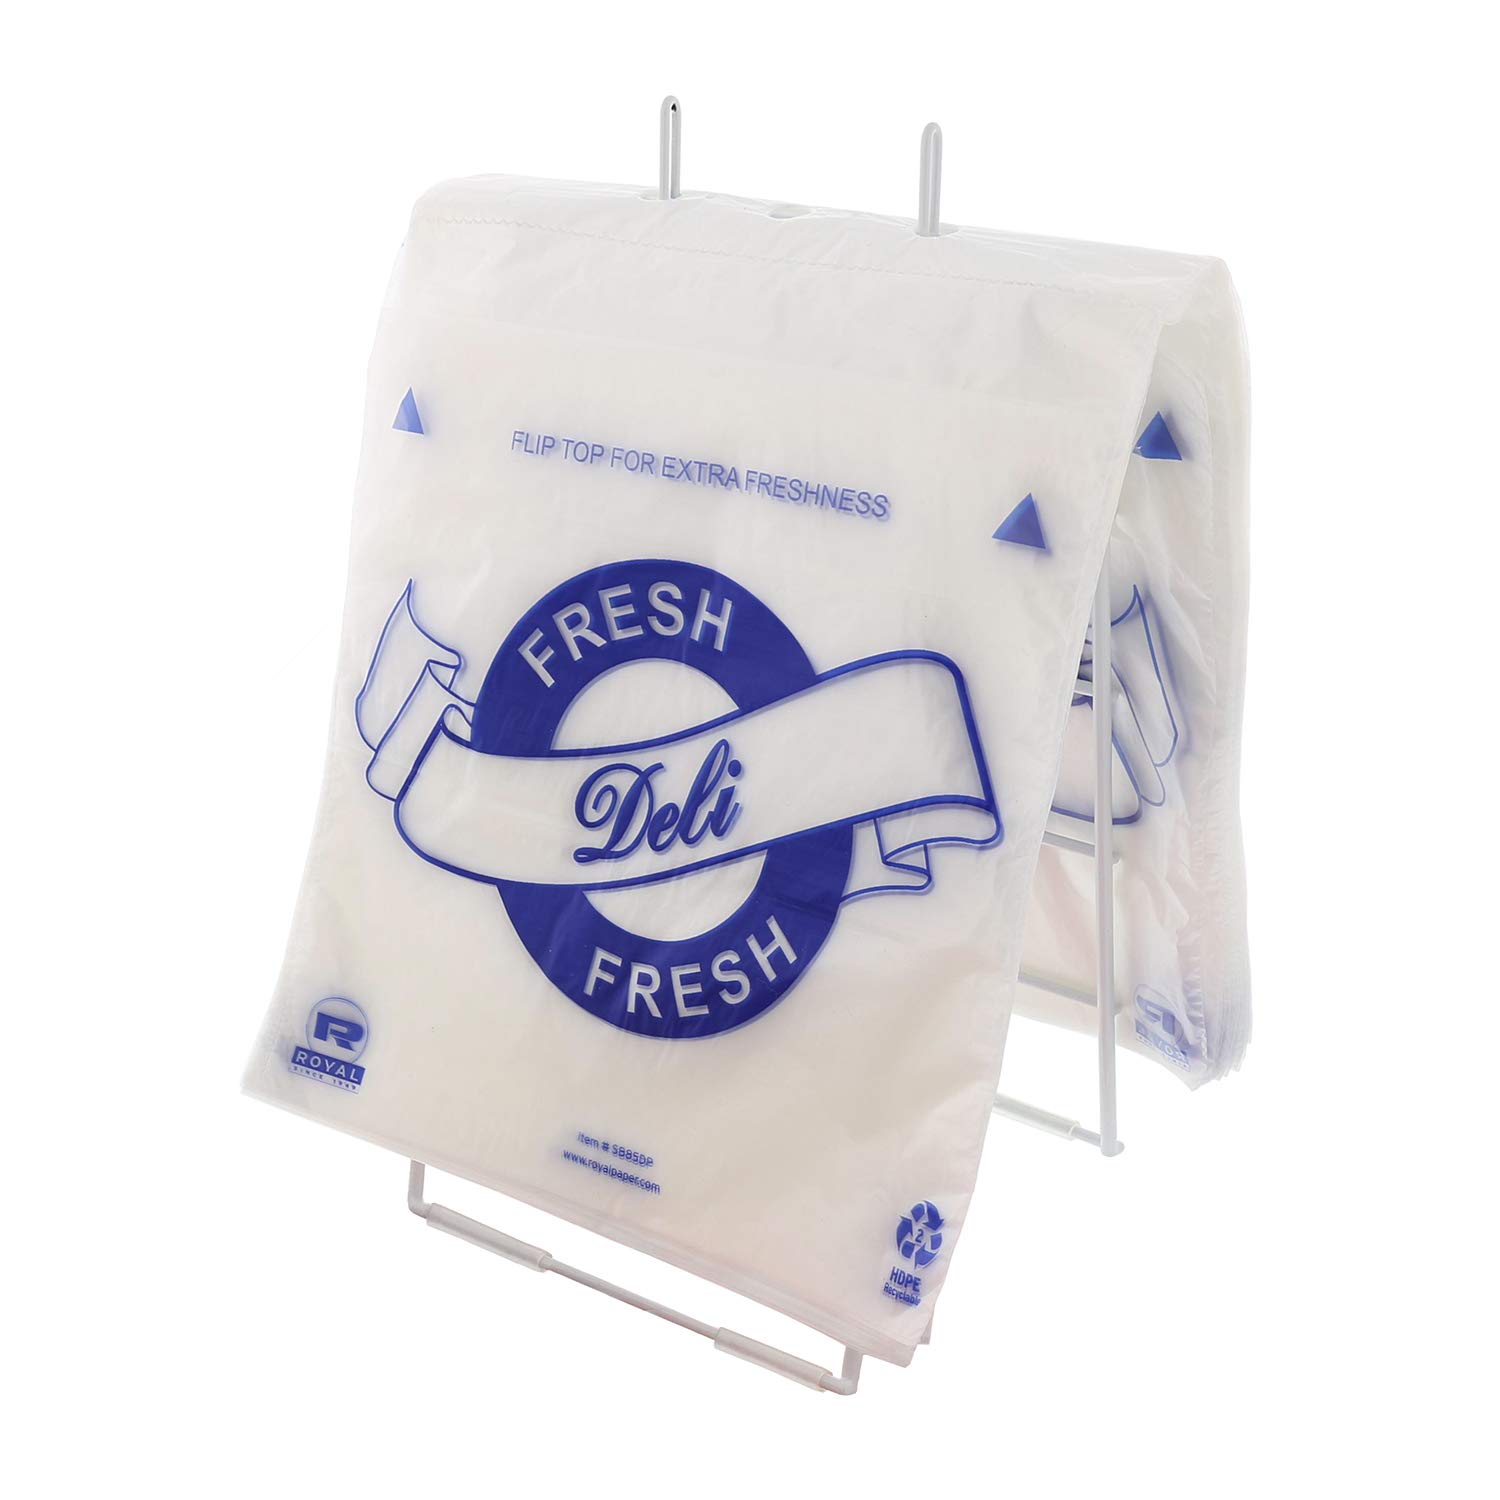 Royal High Density Printed Deli Saddle Bags, 8.5 Inch X 8.5 Inch, Package of 2000